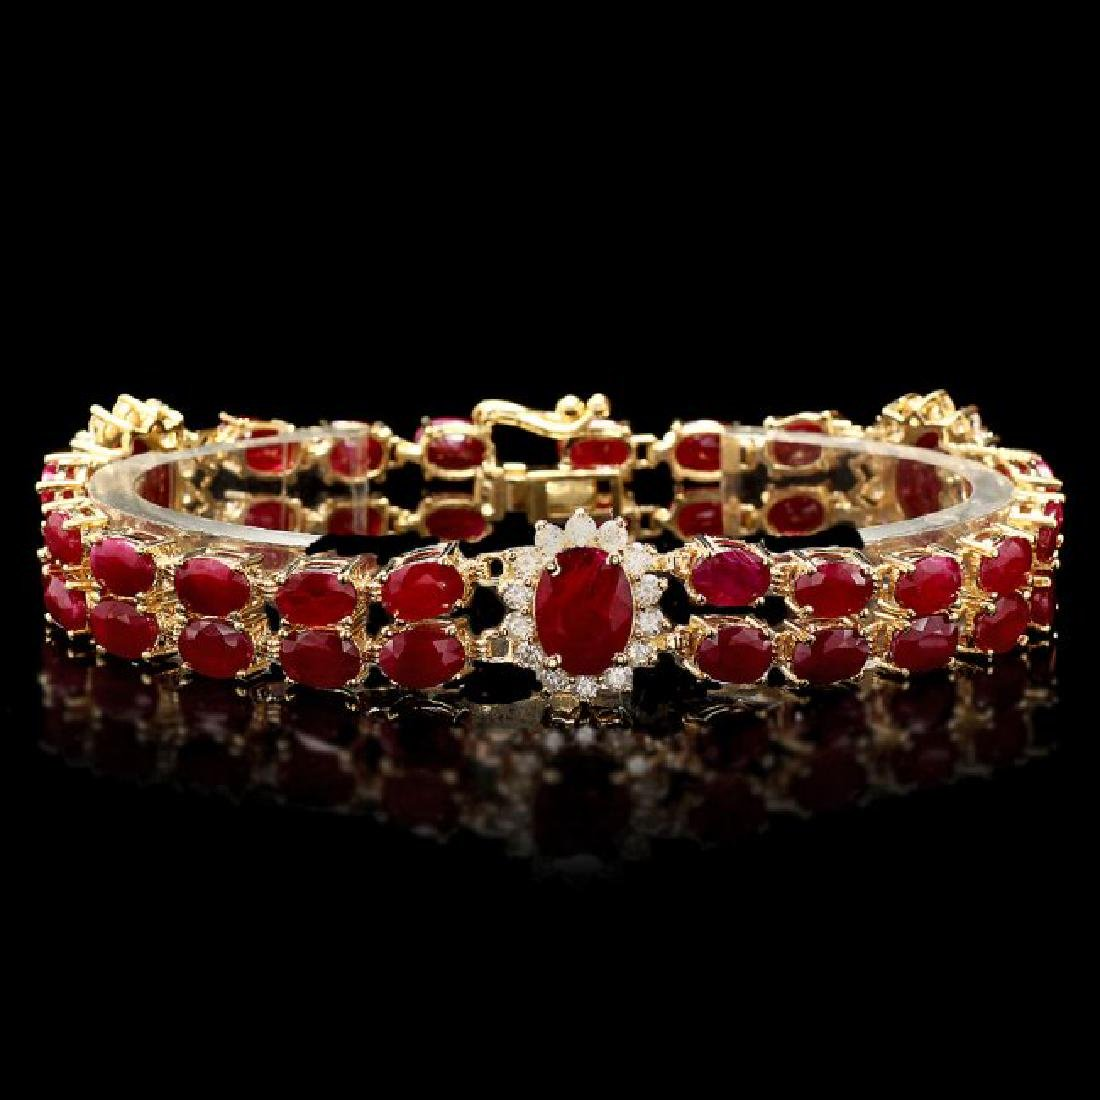 14k Gold 31.5ct Ruby 1.70ct Diamond Bracelet